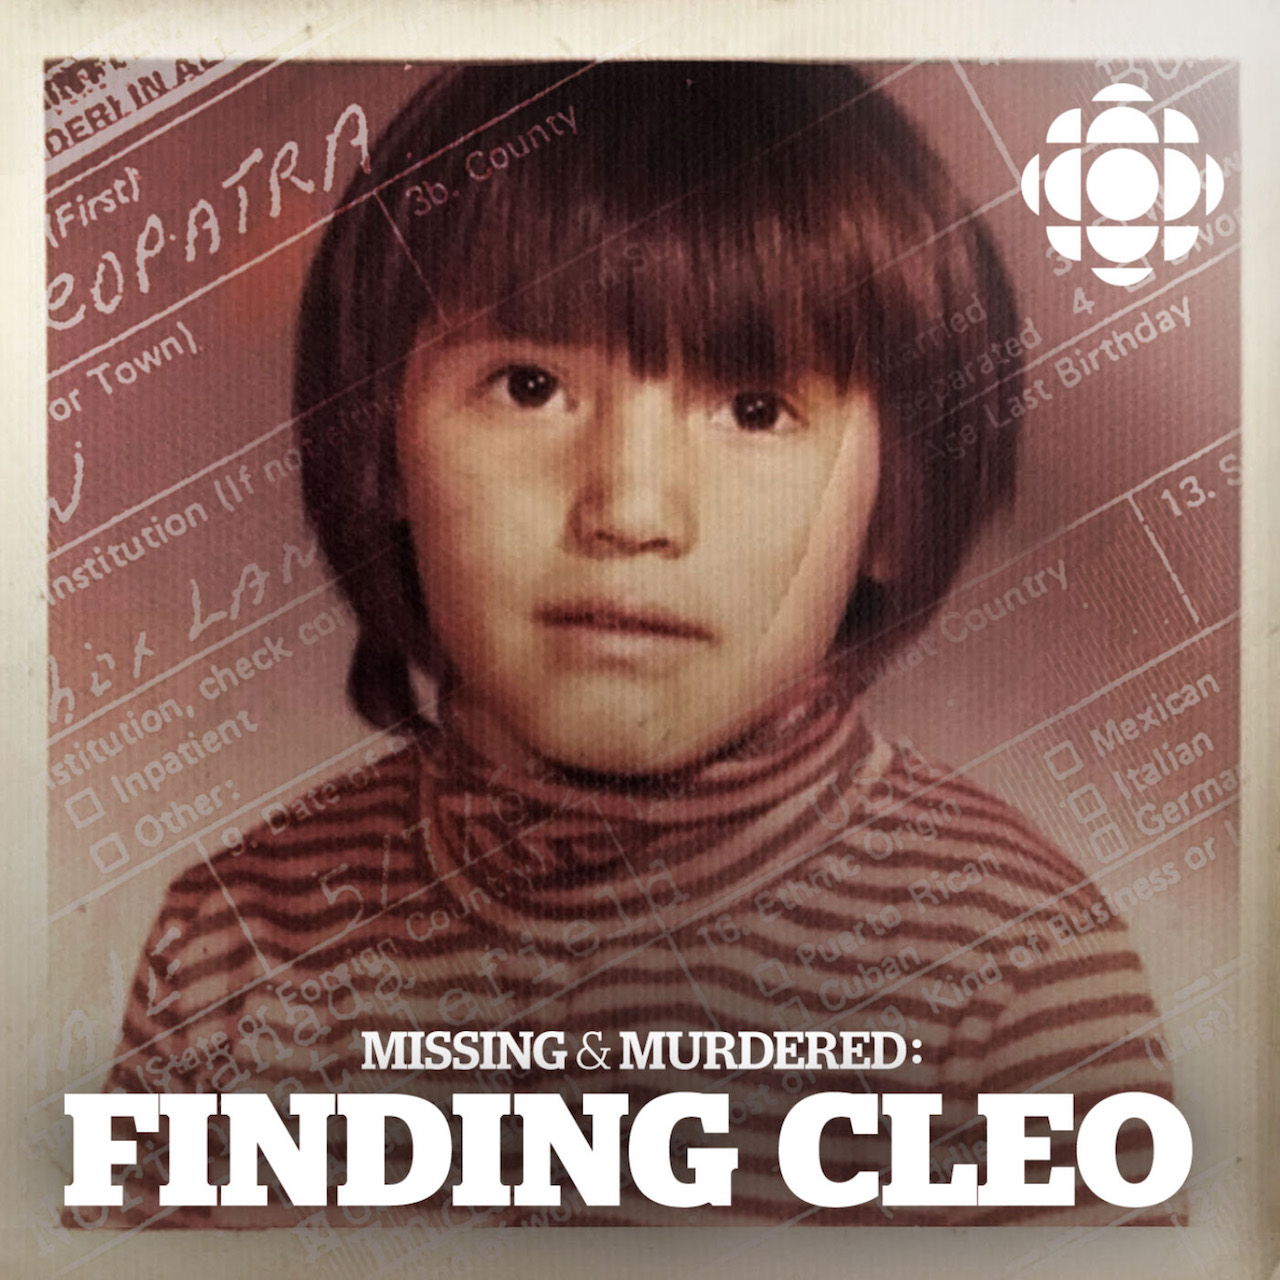 Indigenous podcasts-Missing and Murdered podcast episode about Finding Cleo